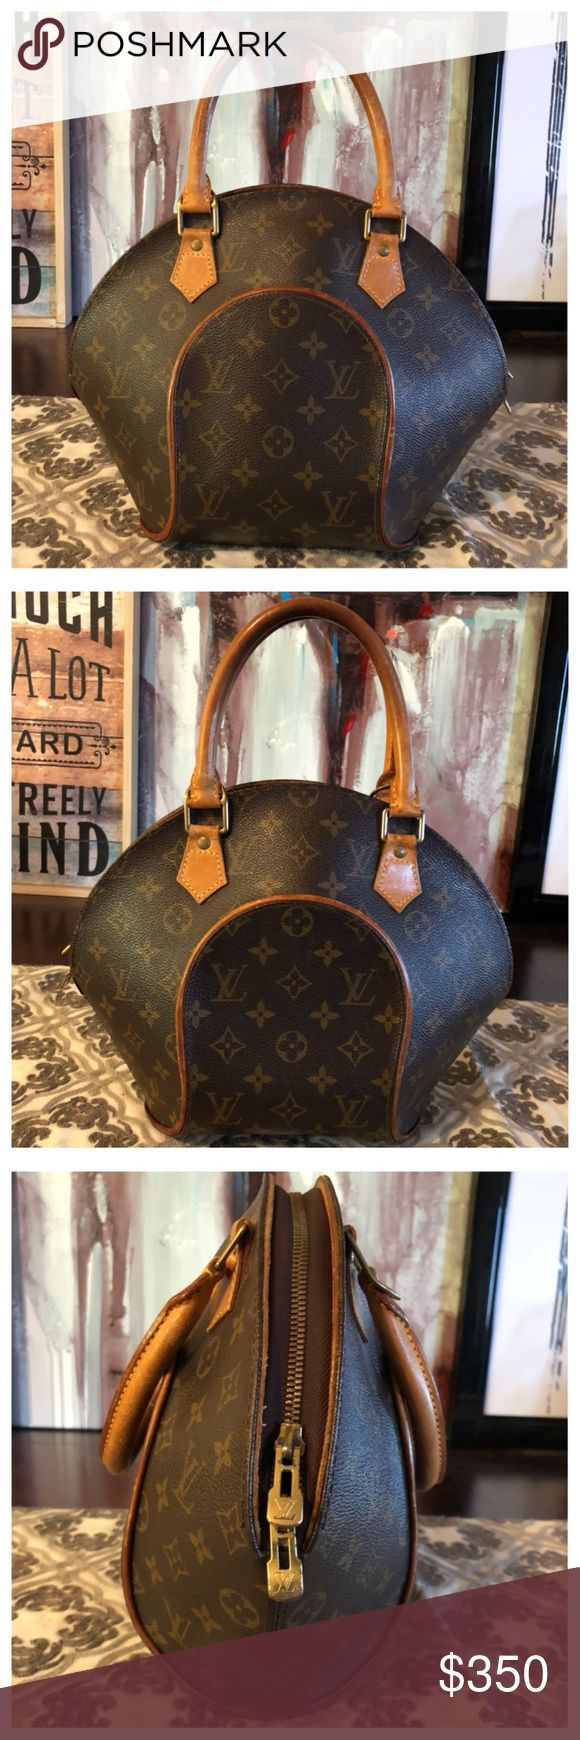 """AUTHENTIC LOUIS VUITTON ELIPSE 100% Authentic Louis Vuitton Elipse. Classy and super cute. Monogram canvas has no scratches or tears. Beautiful caramel patina on leather. Minor wear and patina on handles. Zipper works properly. Inside and pocket is in good condition. W7.8""""xH9.4""""xD2.7"""" No trades Louis Vuitton Bags Satchels"""